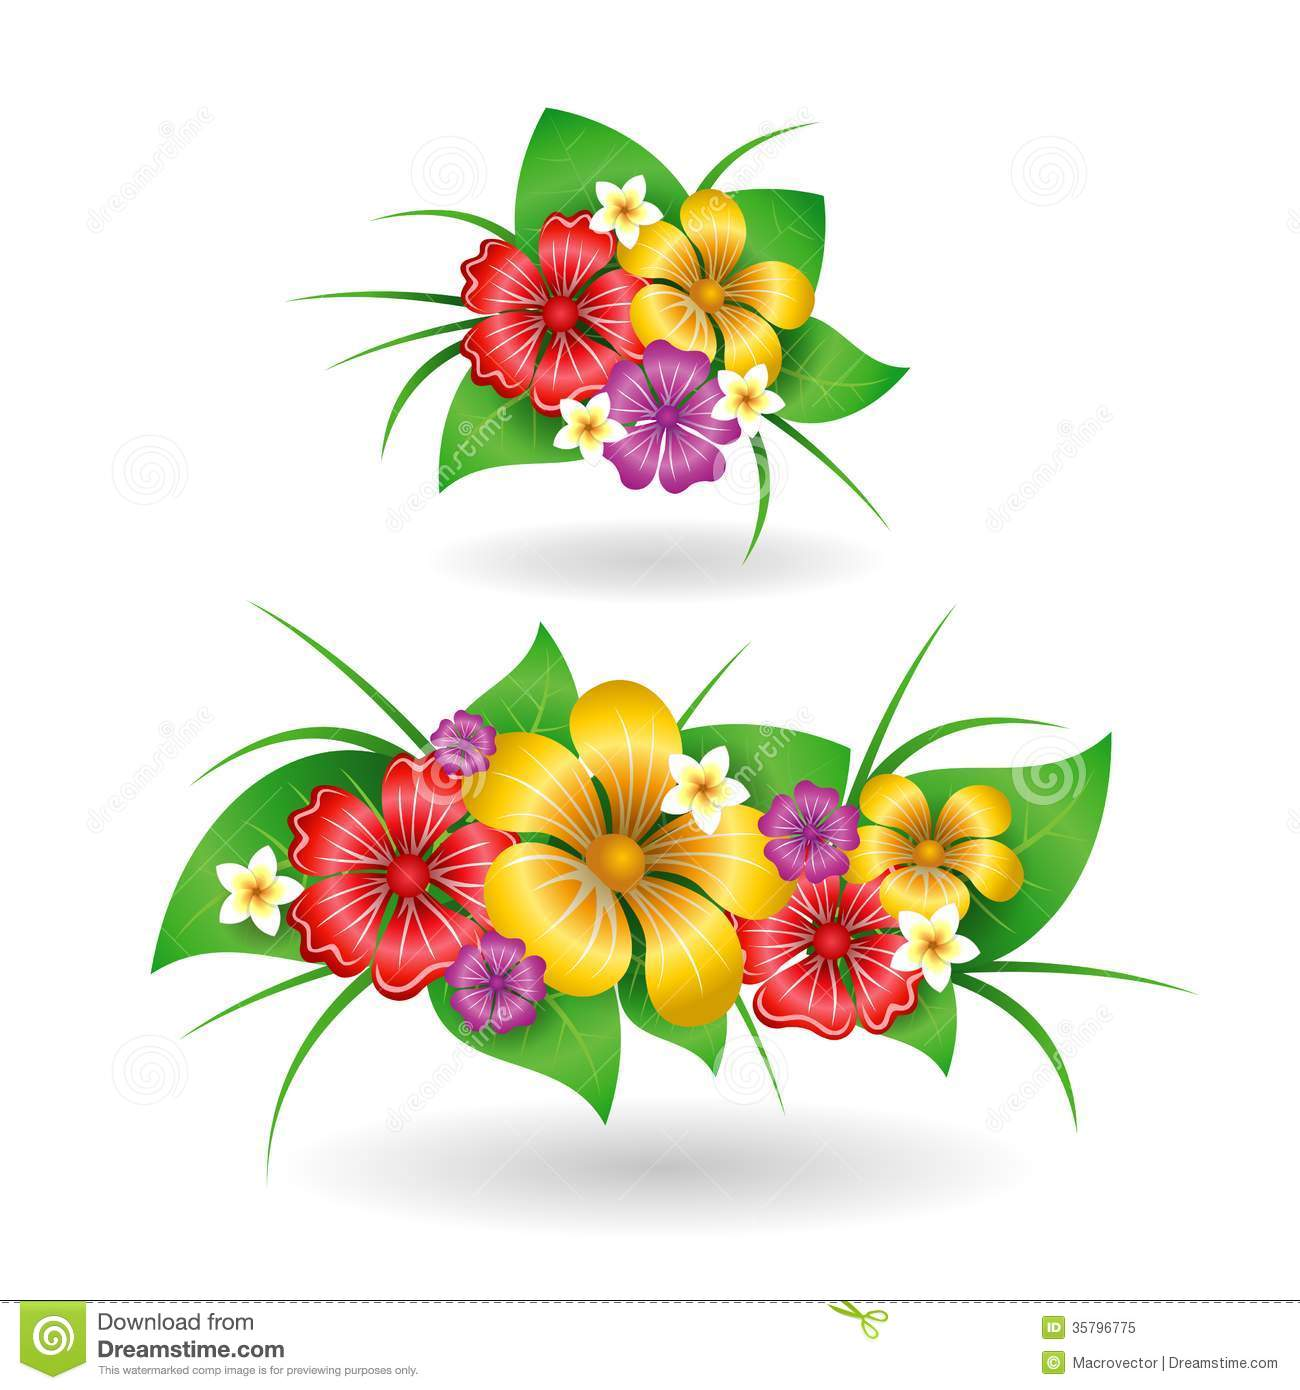 Free pictures of tropical flowers clip art black and white download Tropical flowers pictures free - ClipartFest clip art black and white download